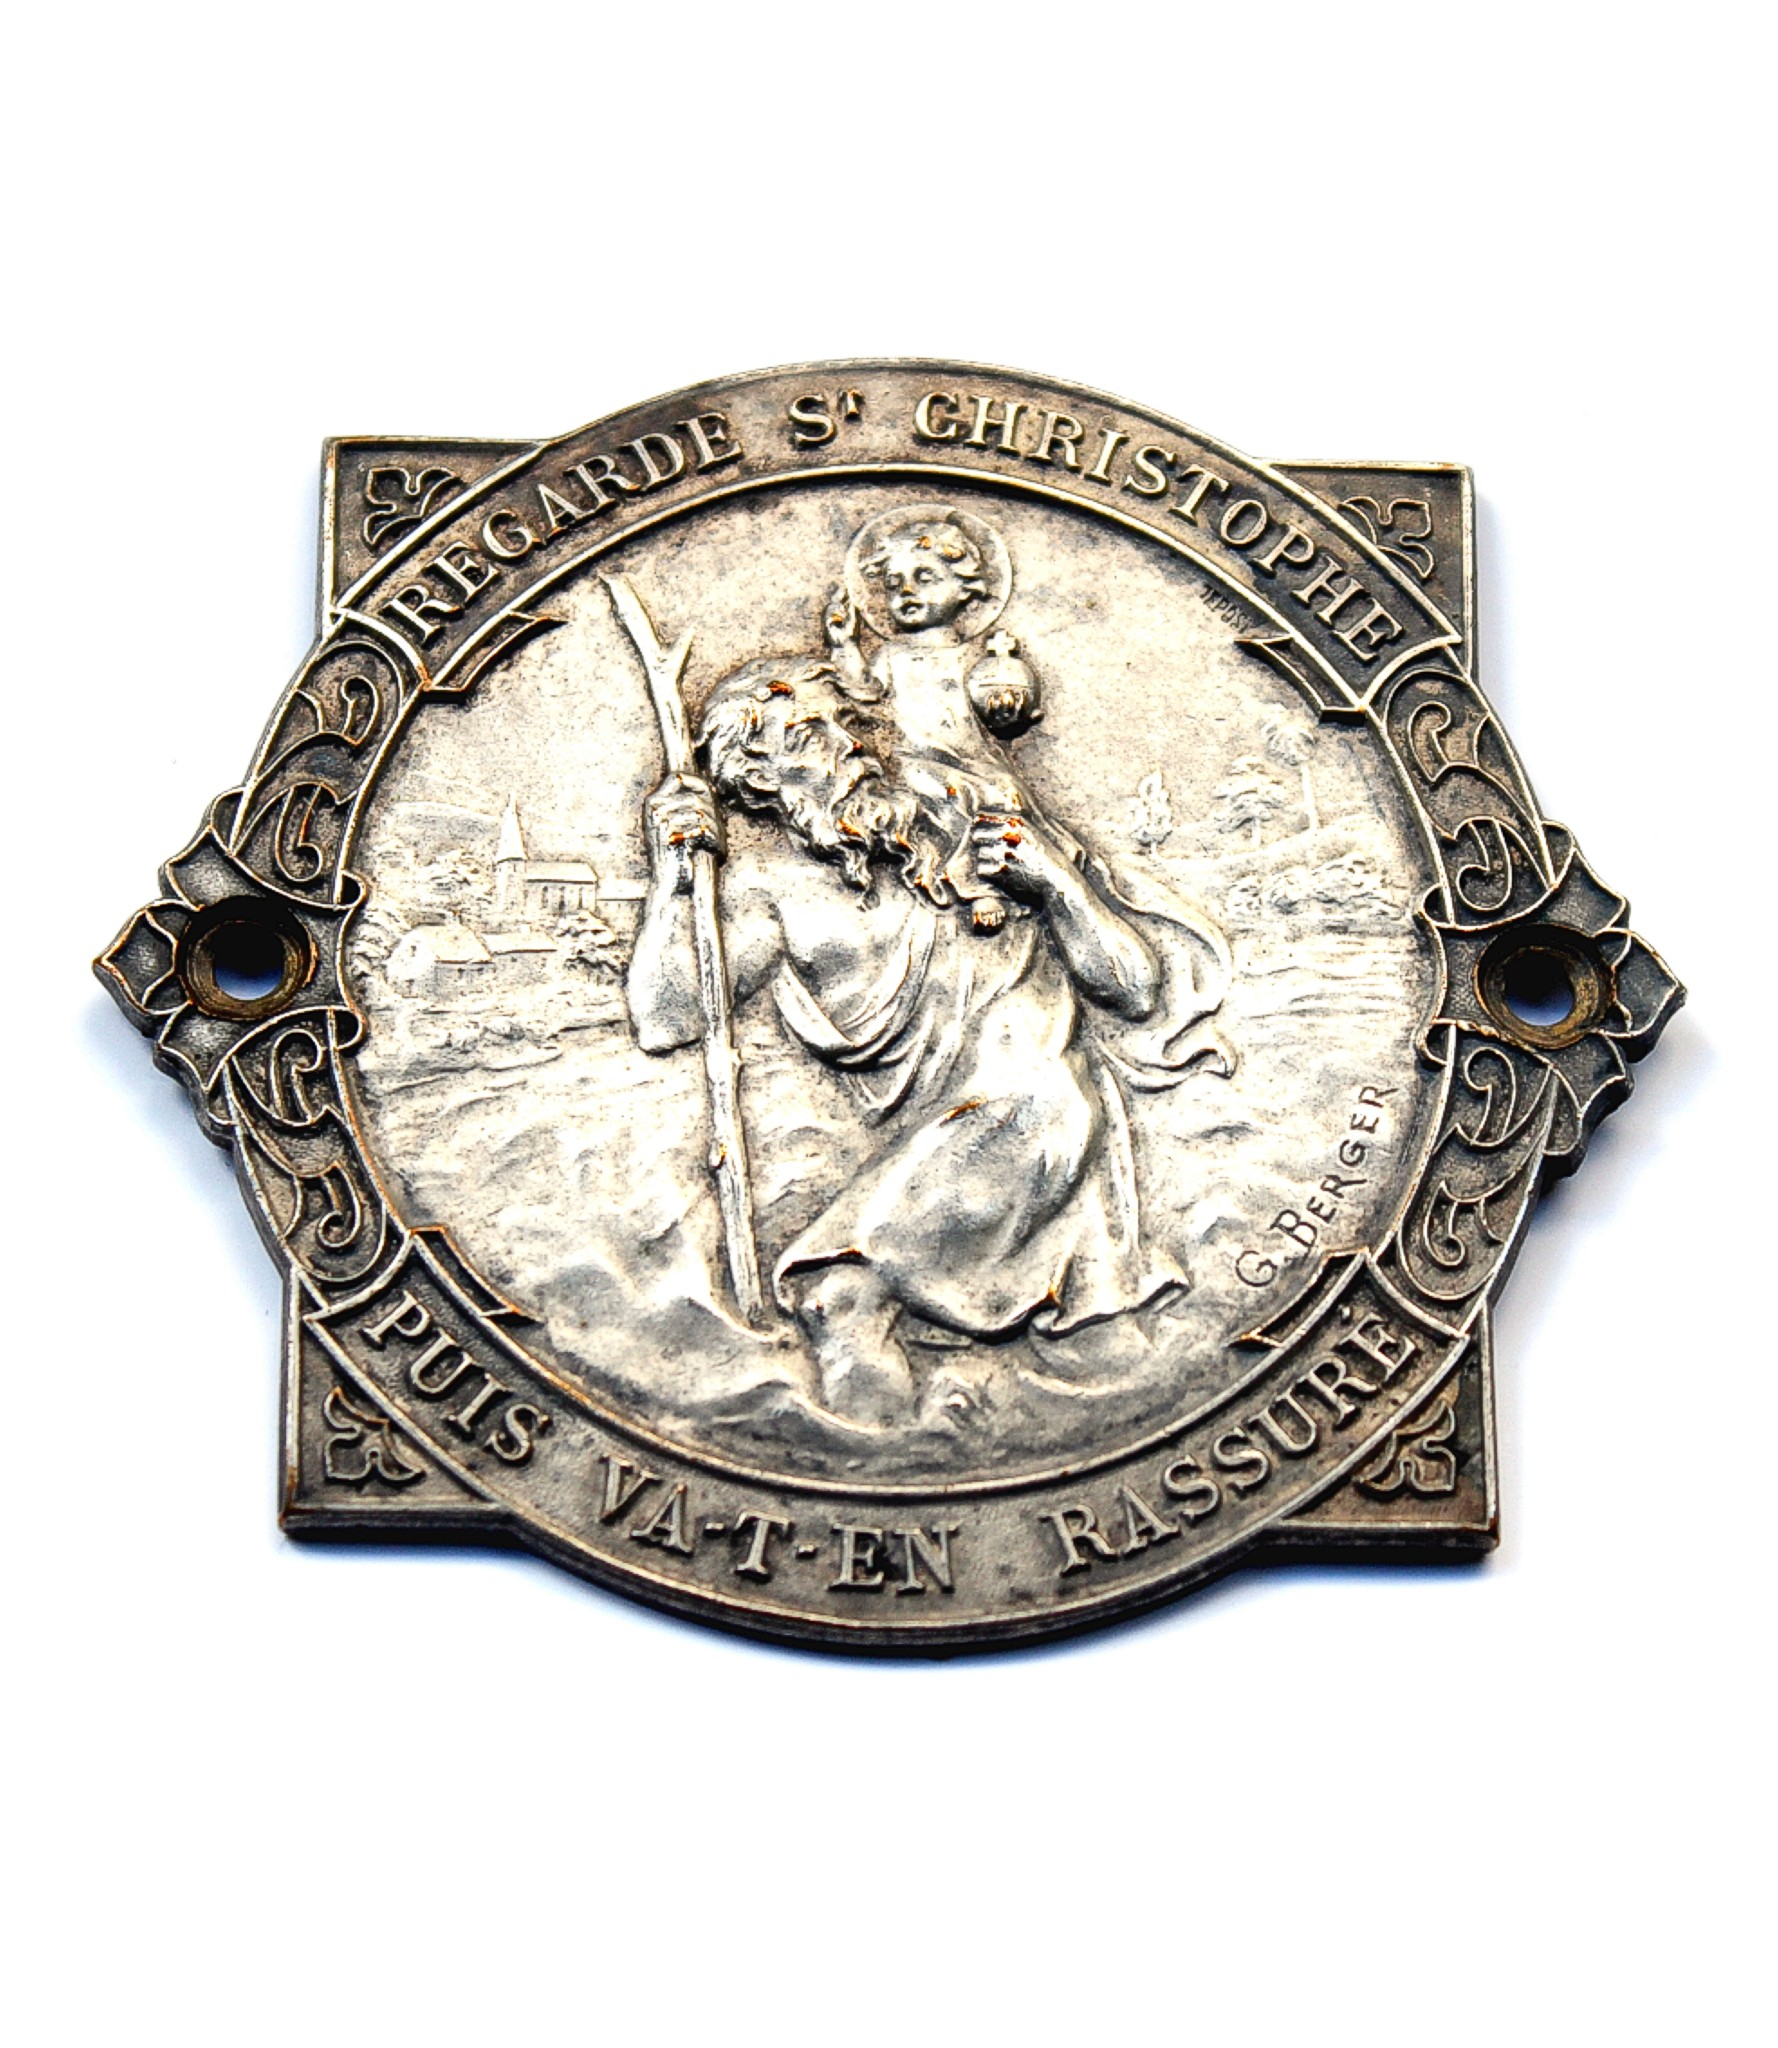 Saint Christopher dashboard badge by Berger